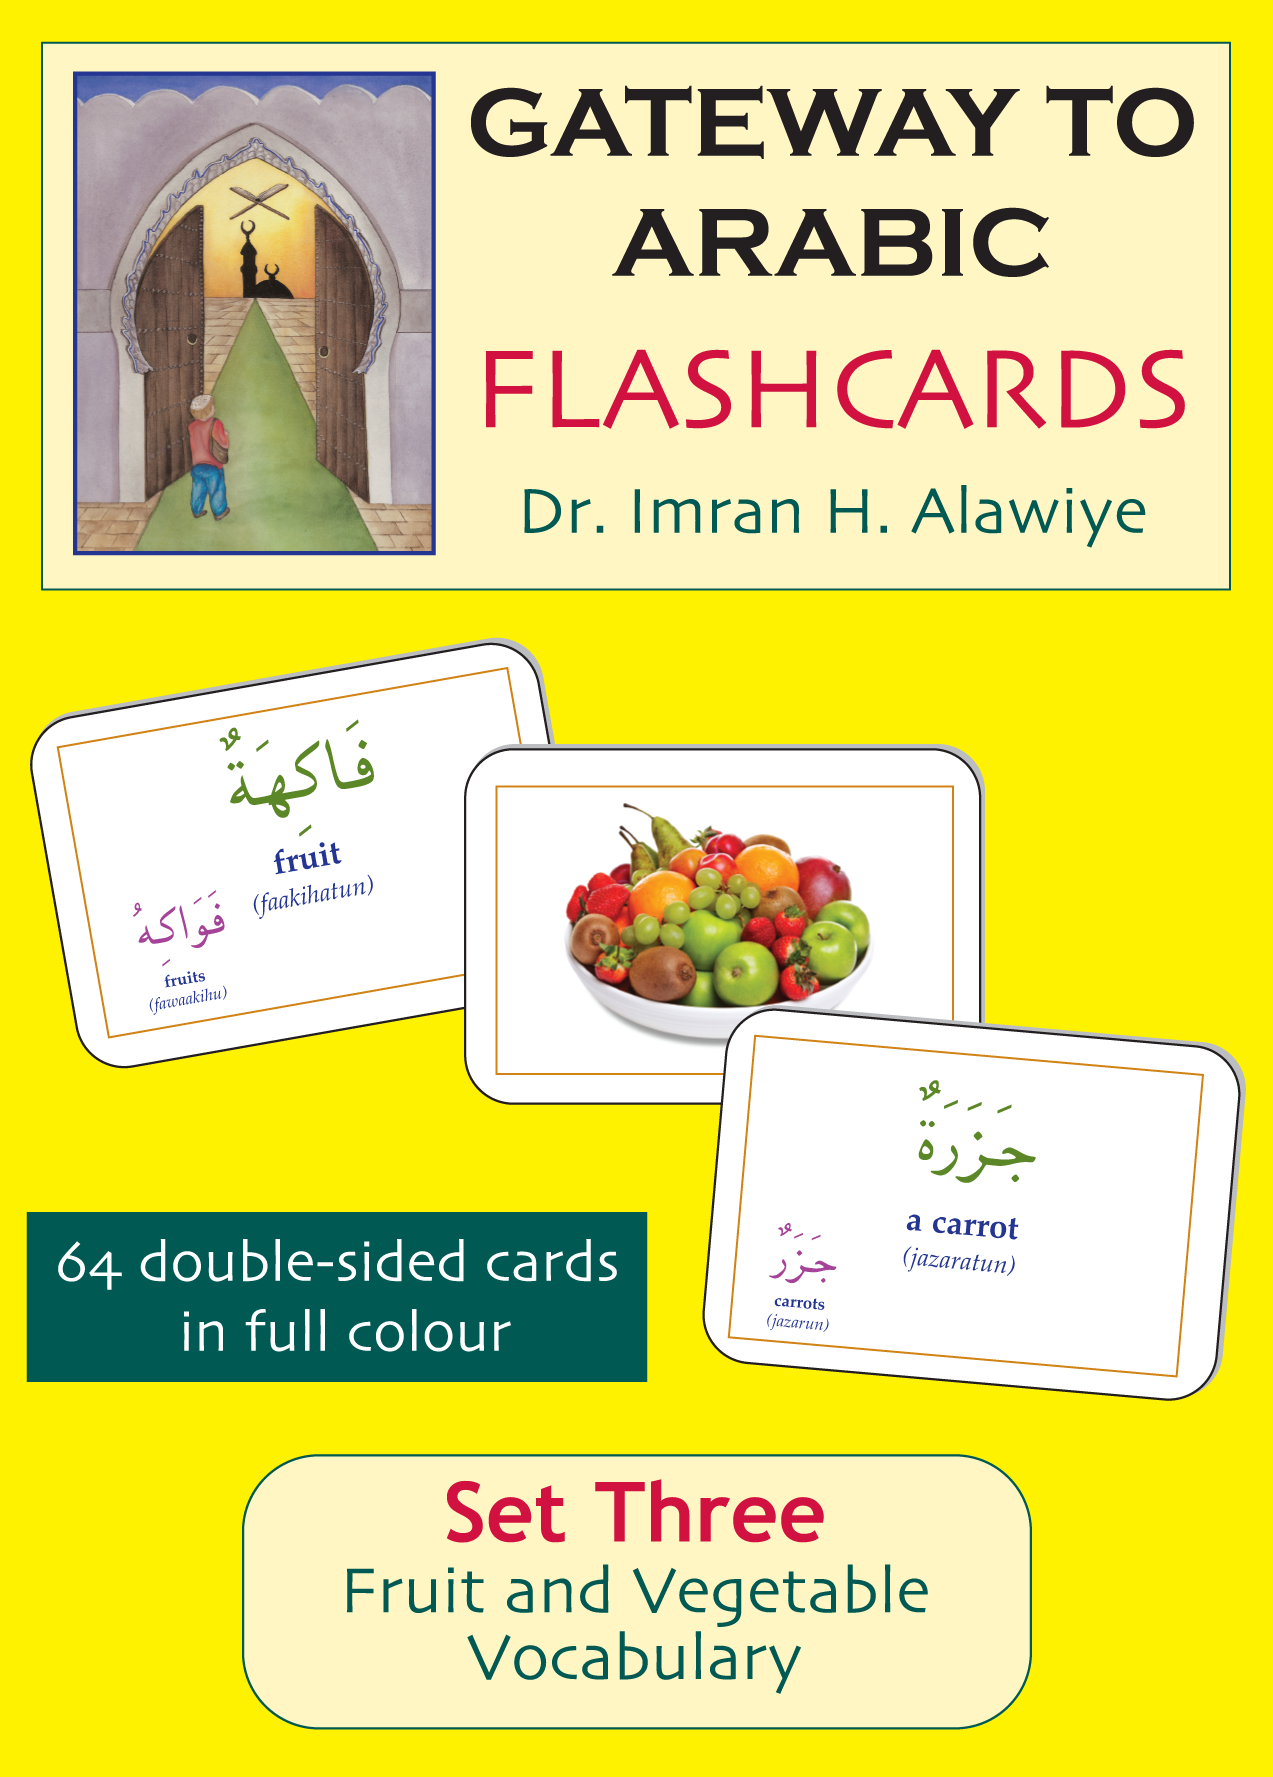 Gateway to Arabic Flashcards Set 3